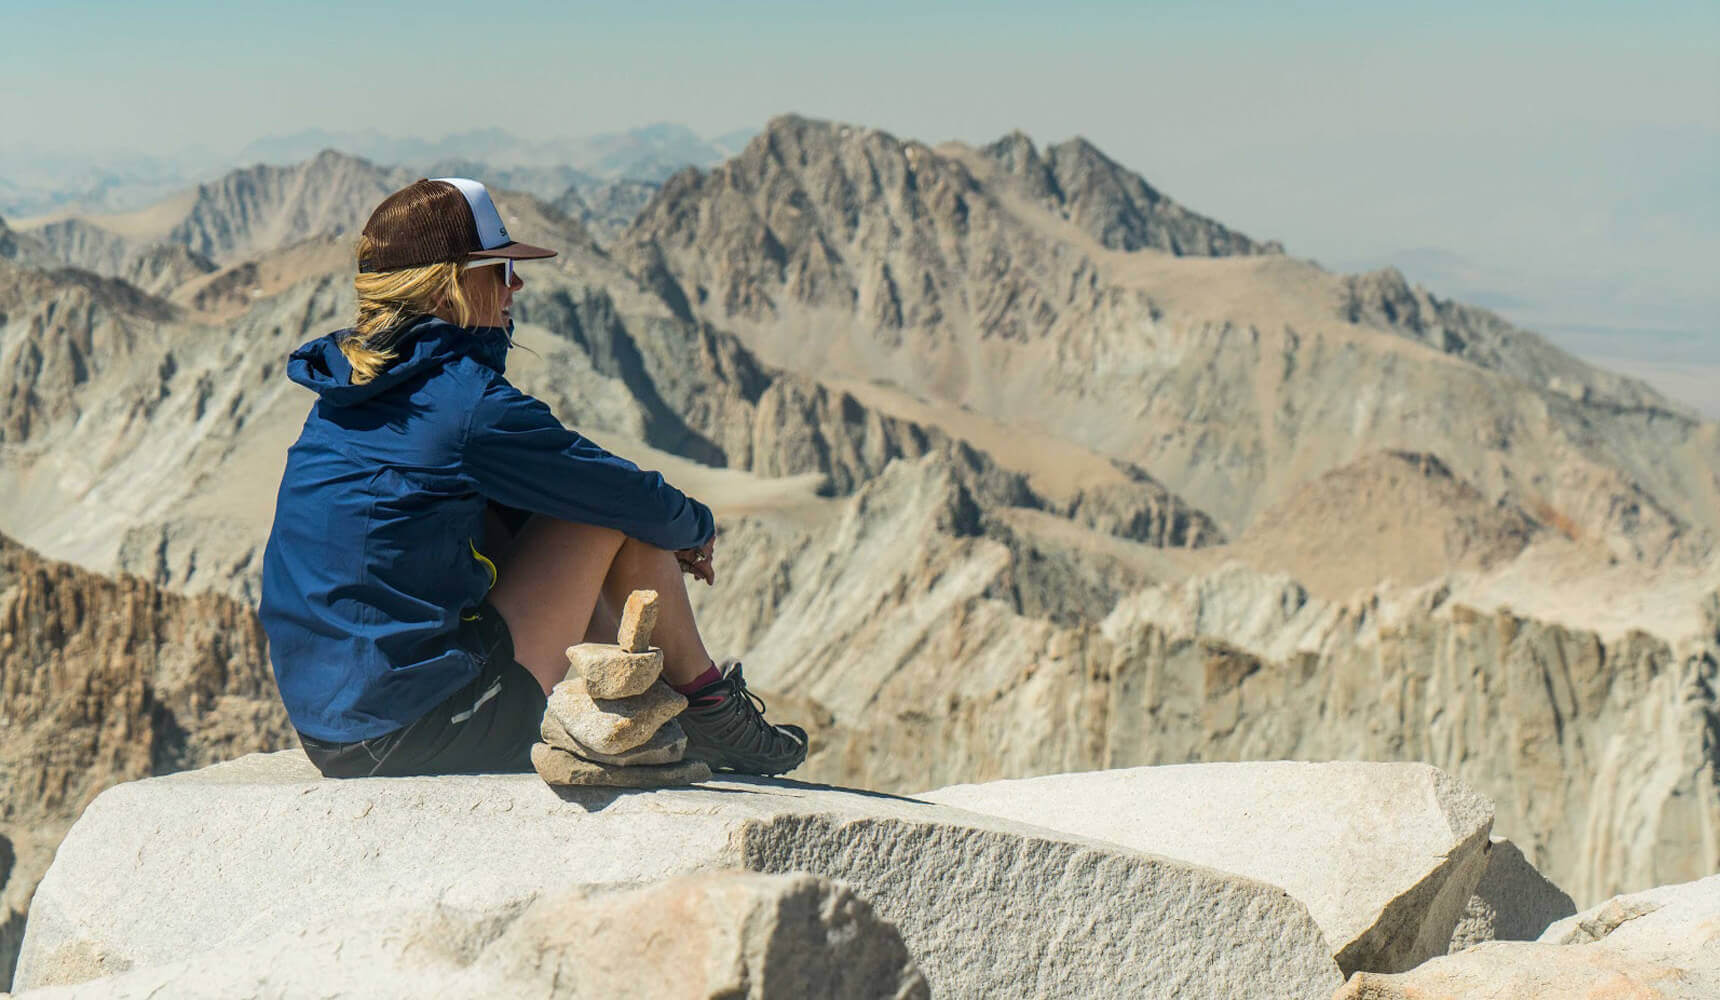 Lessons From The Mountain: Defining Moments That Propel Us Forward